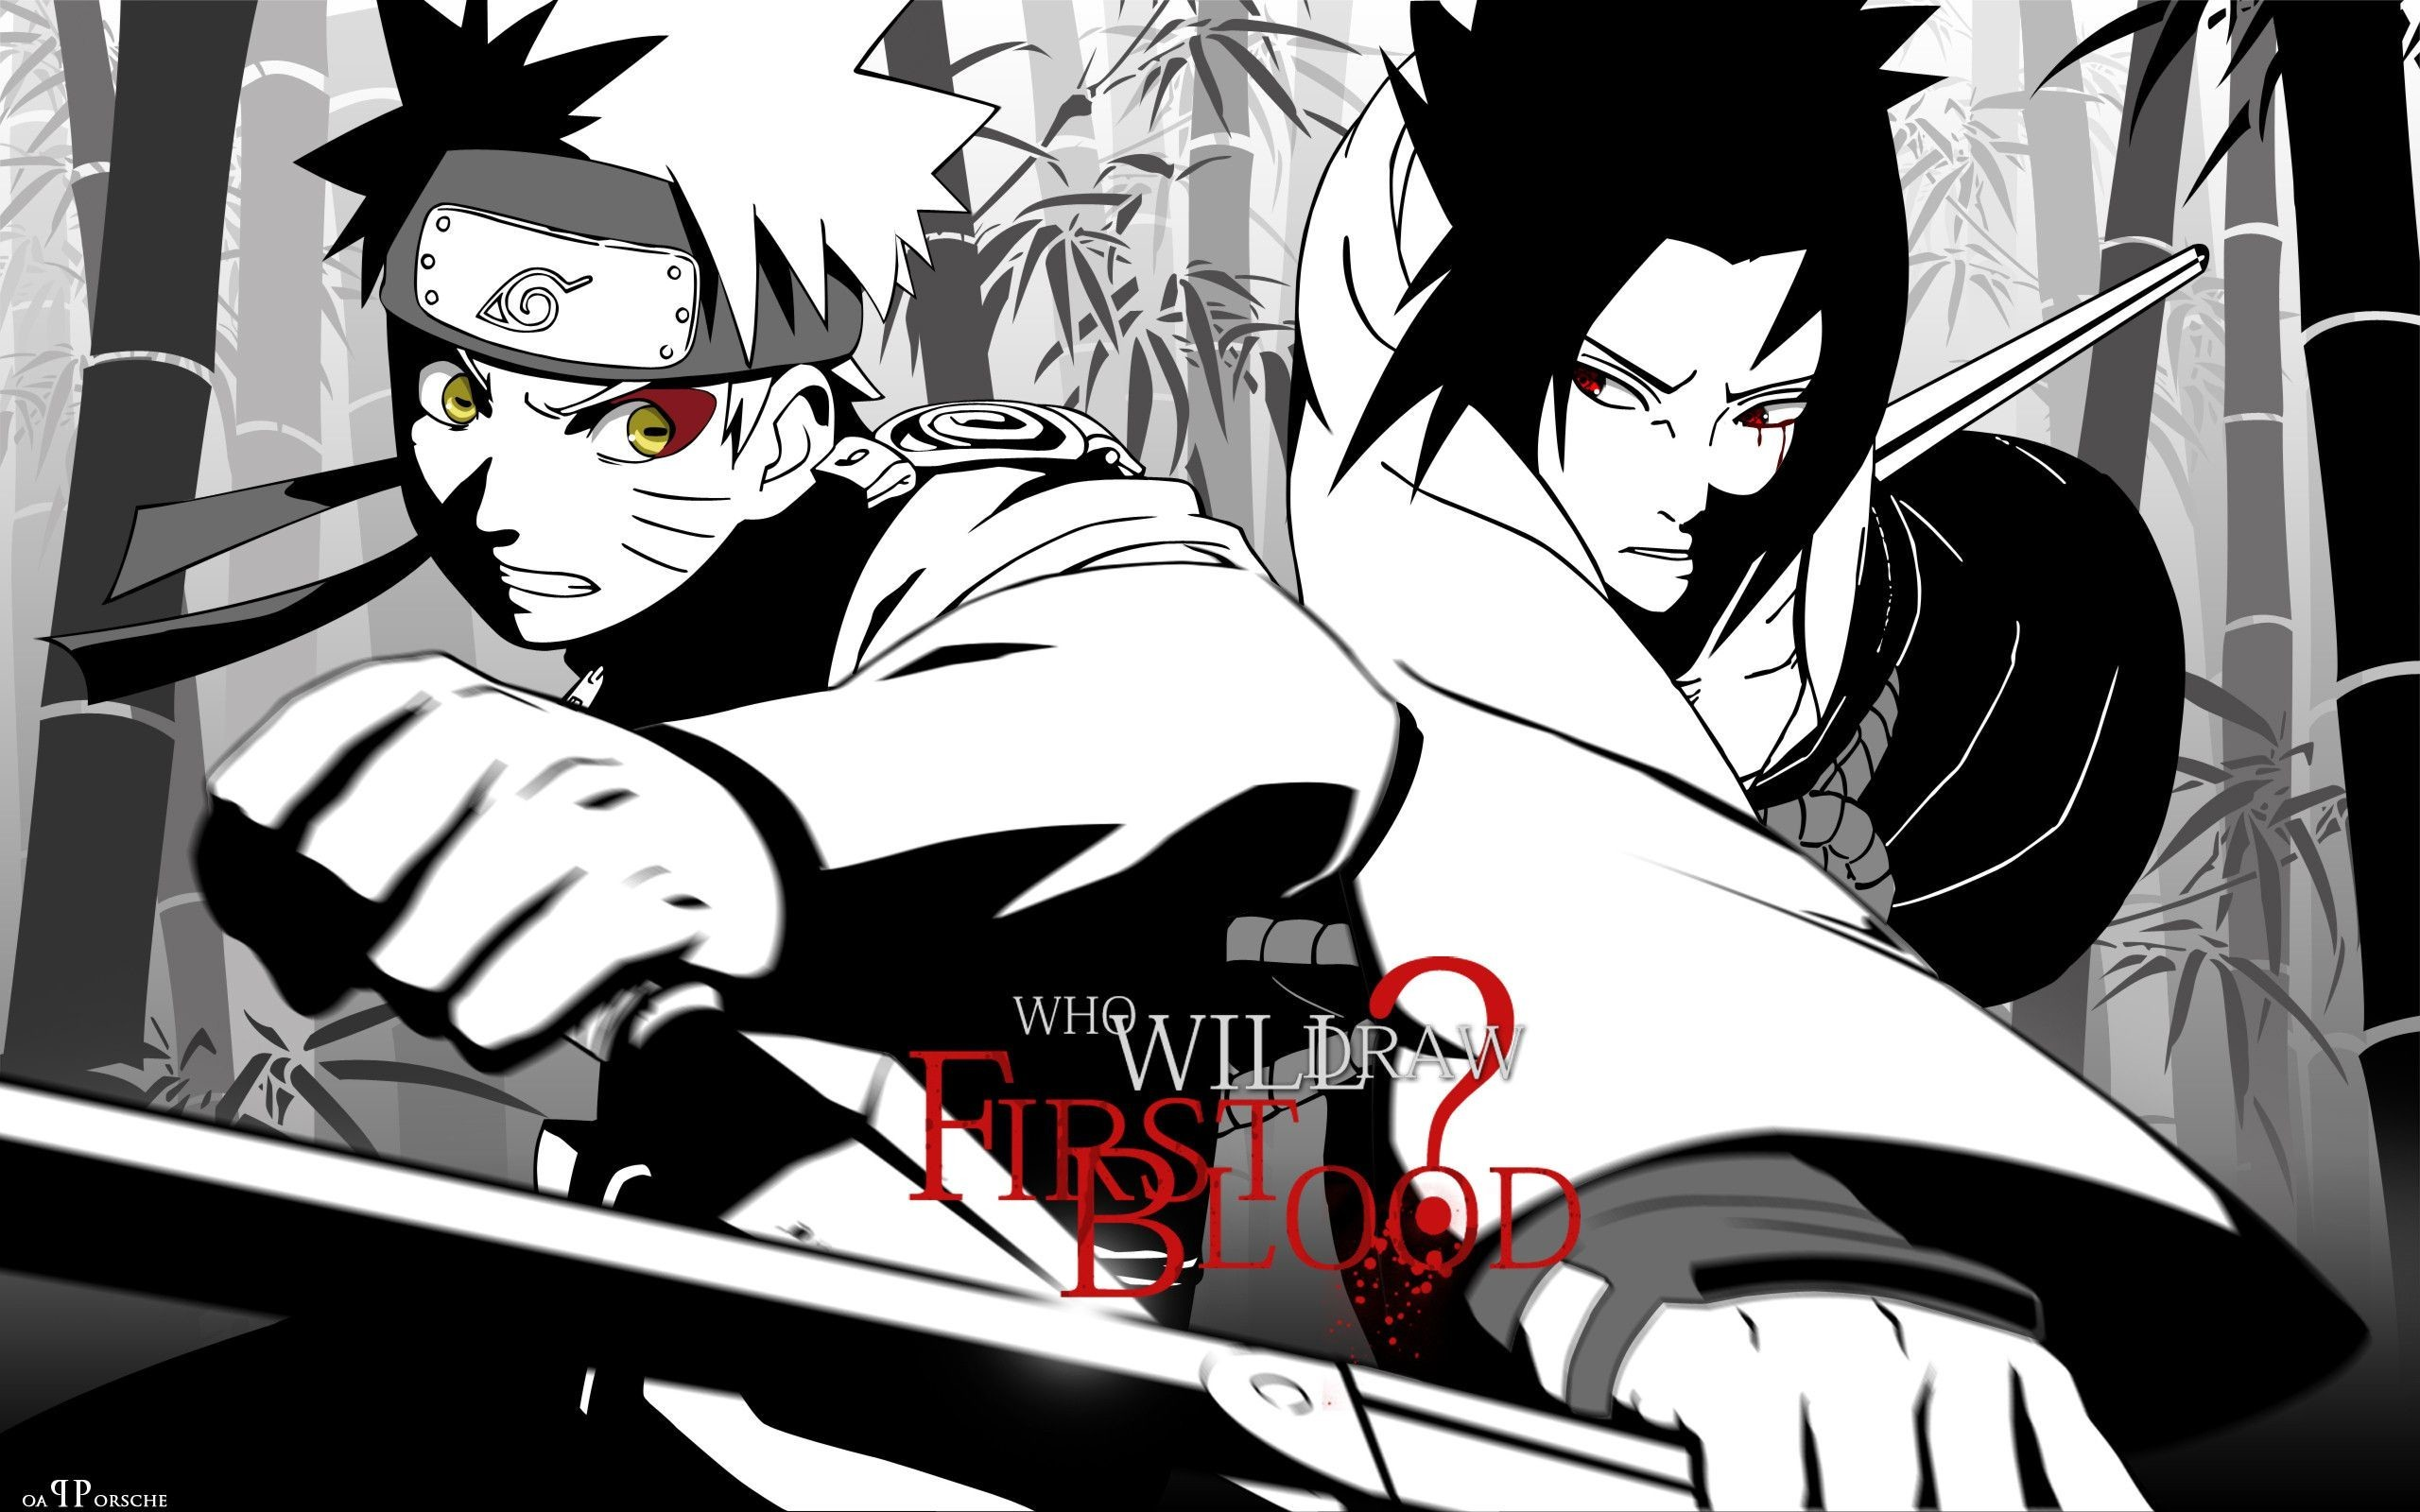 Naruto Shippuden Awesome Phone Wallpapers Hd - Naruto Shippuden Wallpaper Sasuke And Naruto - HD Wallpaper